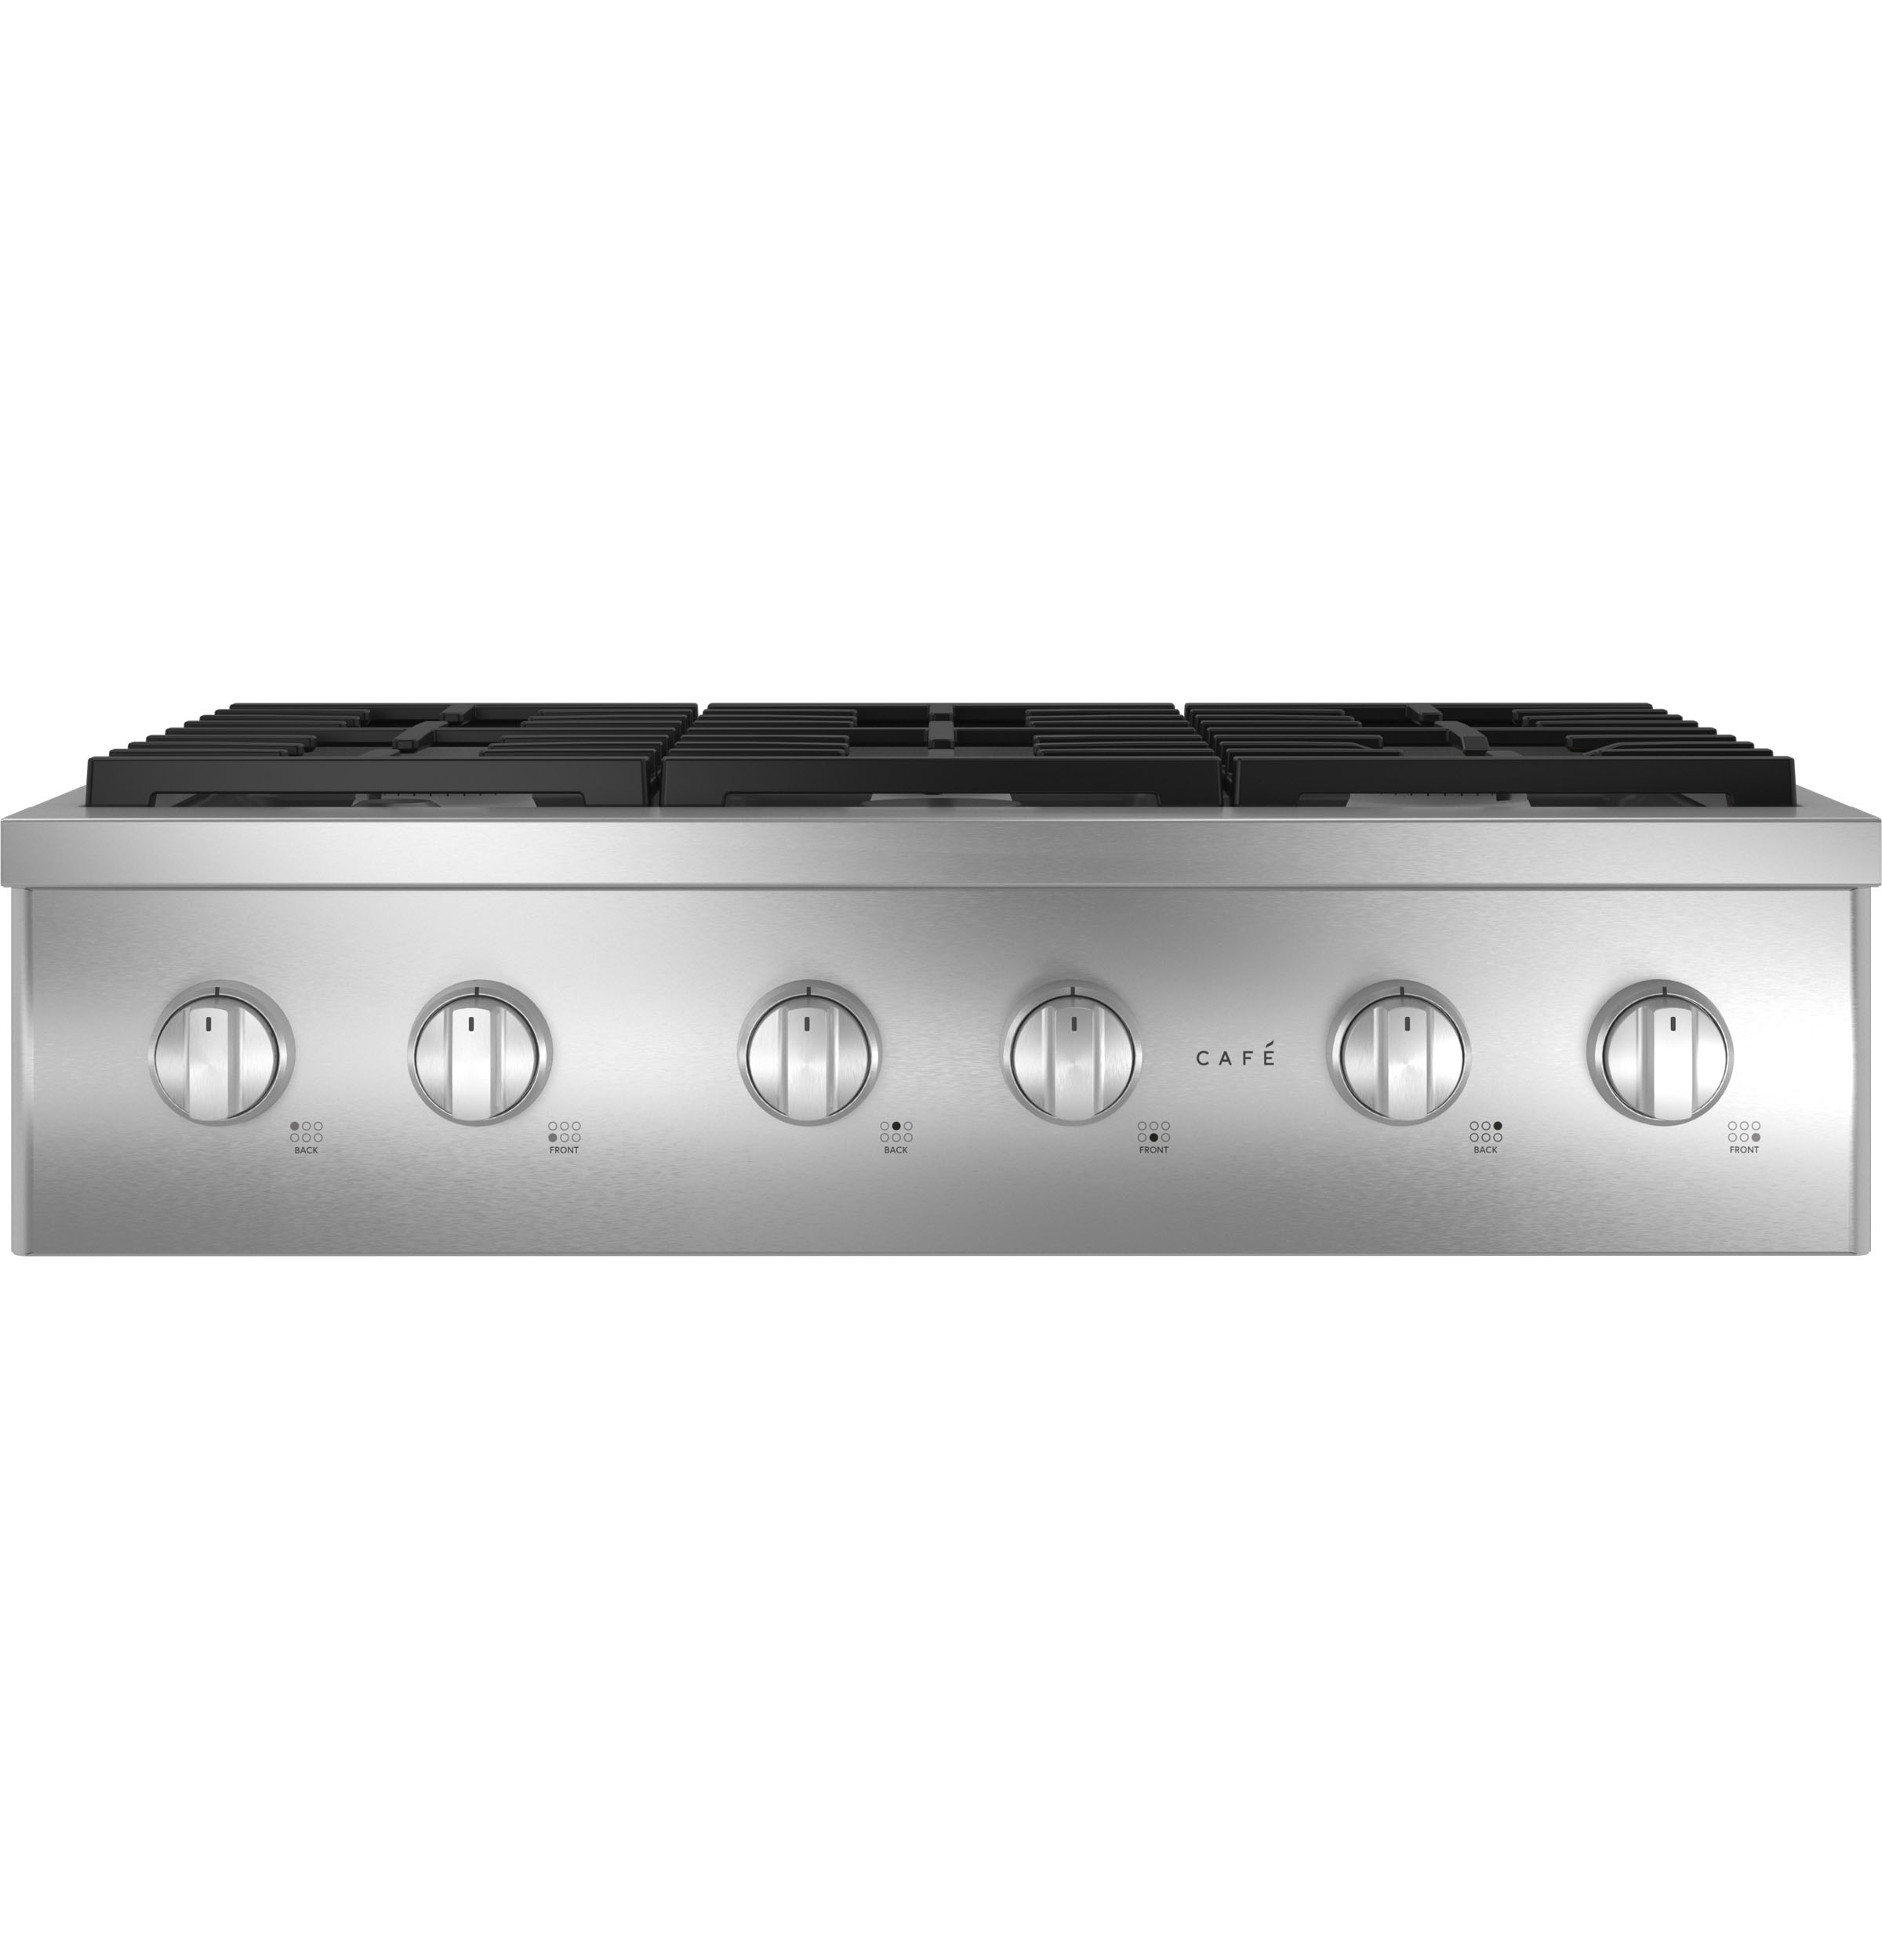 "Cafe Café™ 36"" Commercial-Style Gas Rangetop with 6 Burners (Natural Gas)"